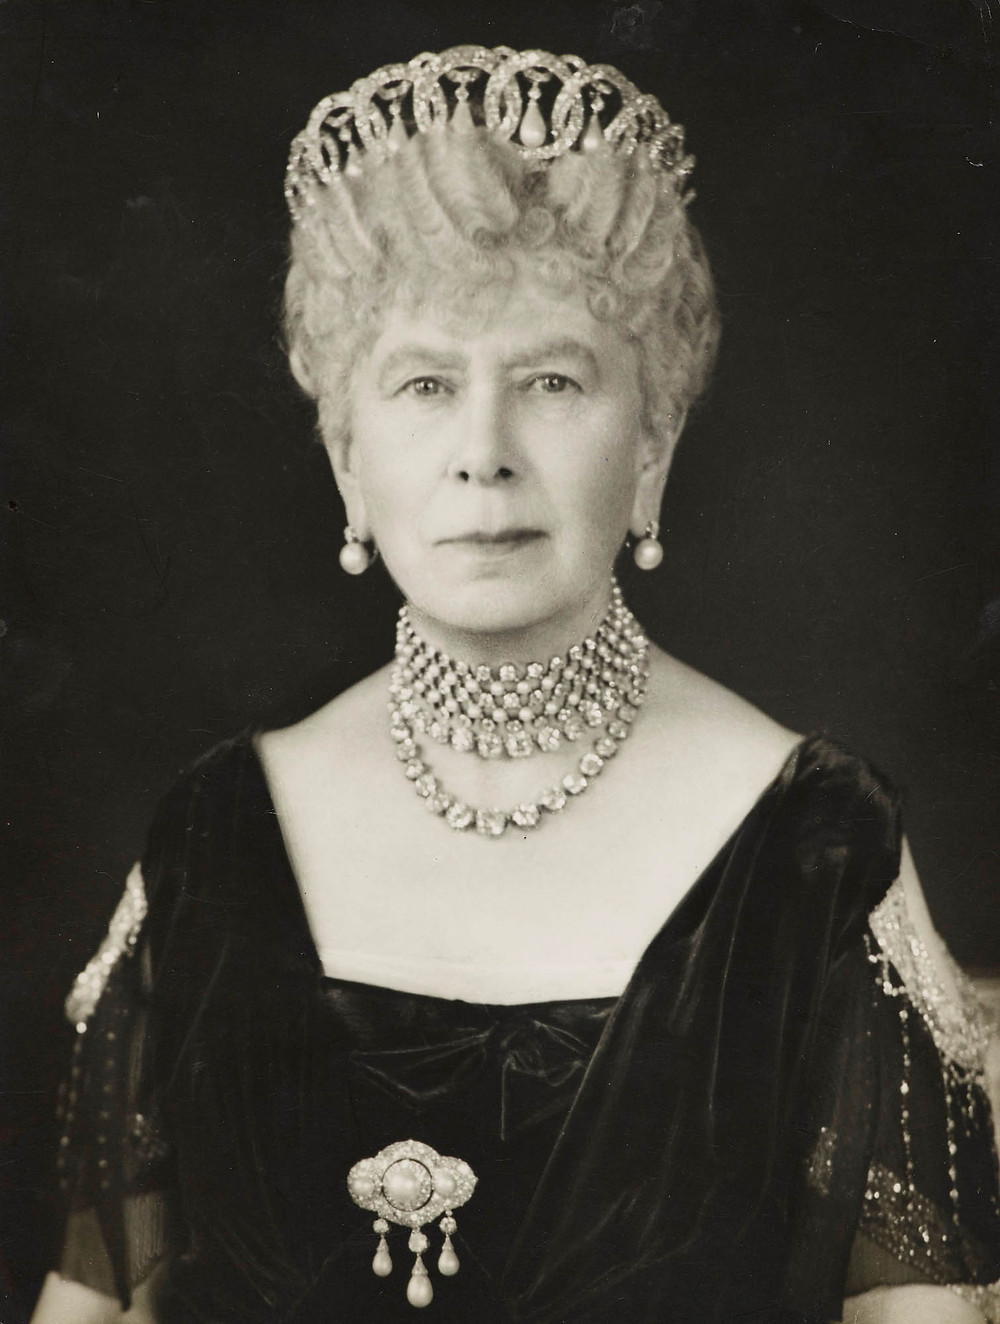 Queen Mary 1947 portrait photograph